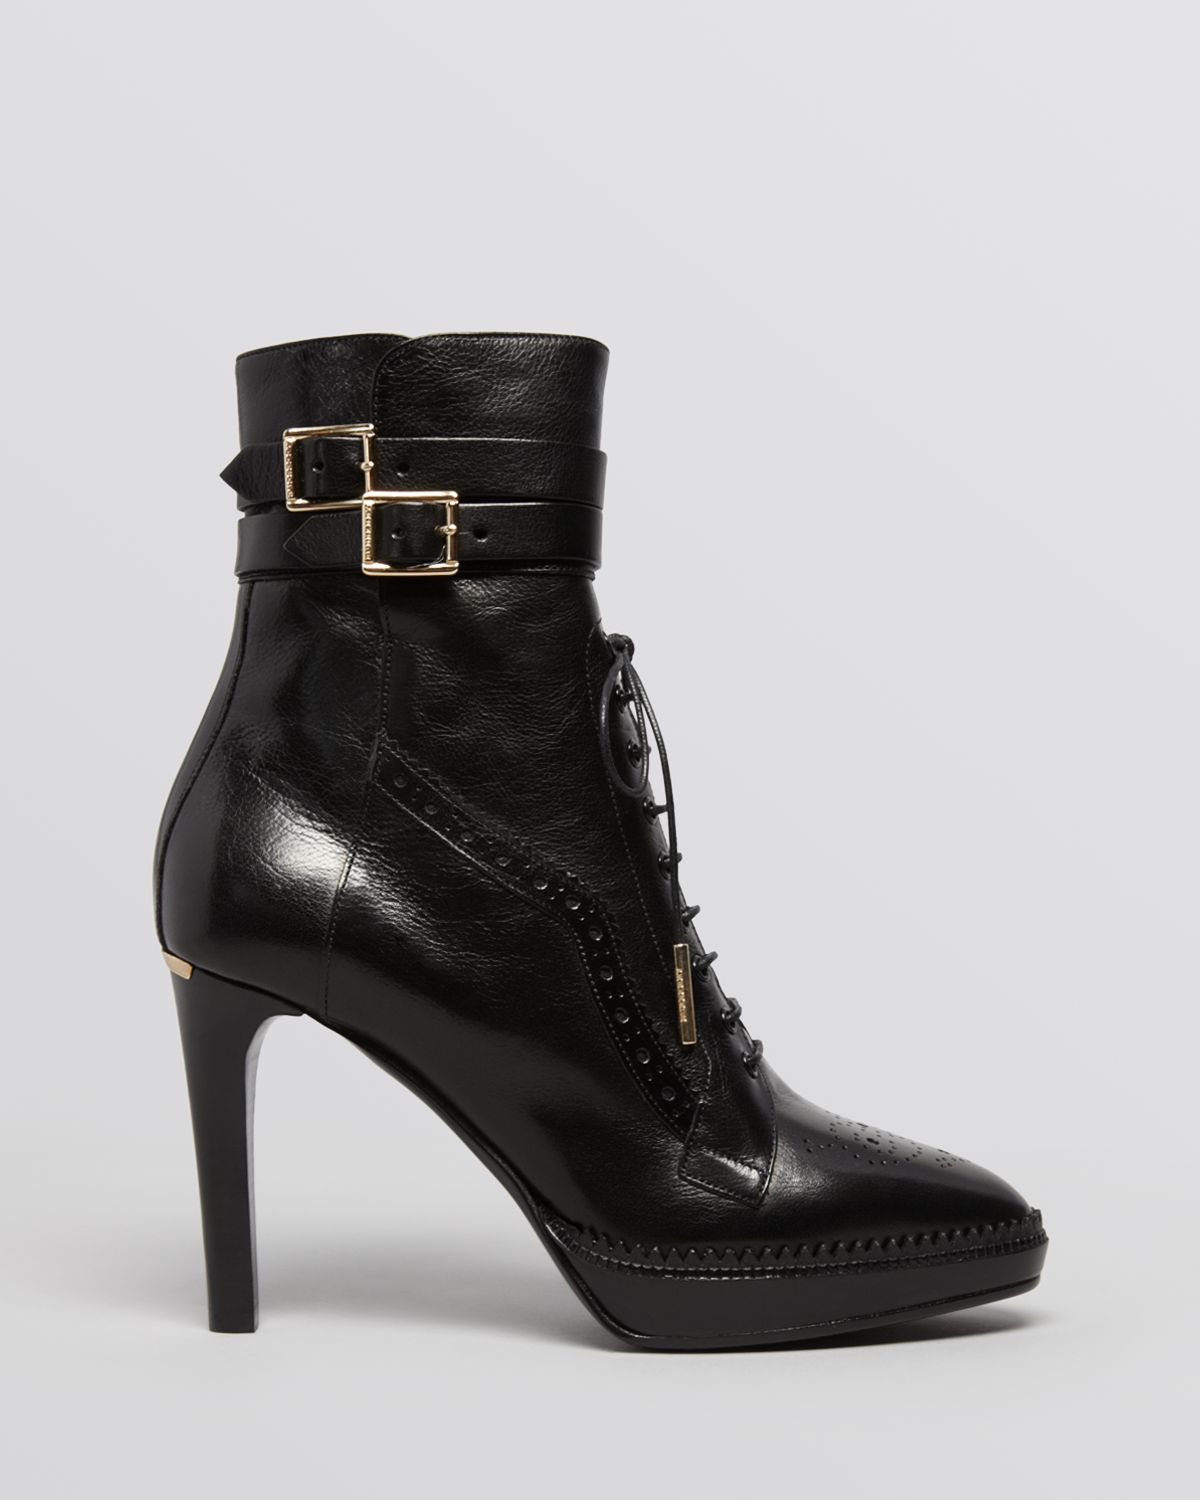 Burberry Lace Up Platform Booties Manners High Heel In